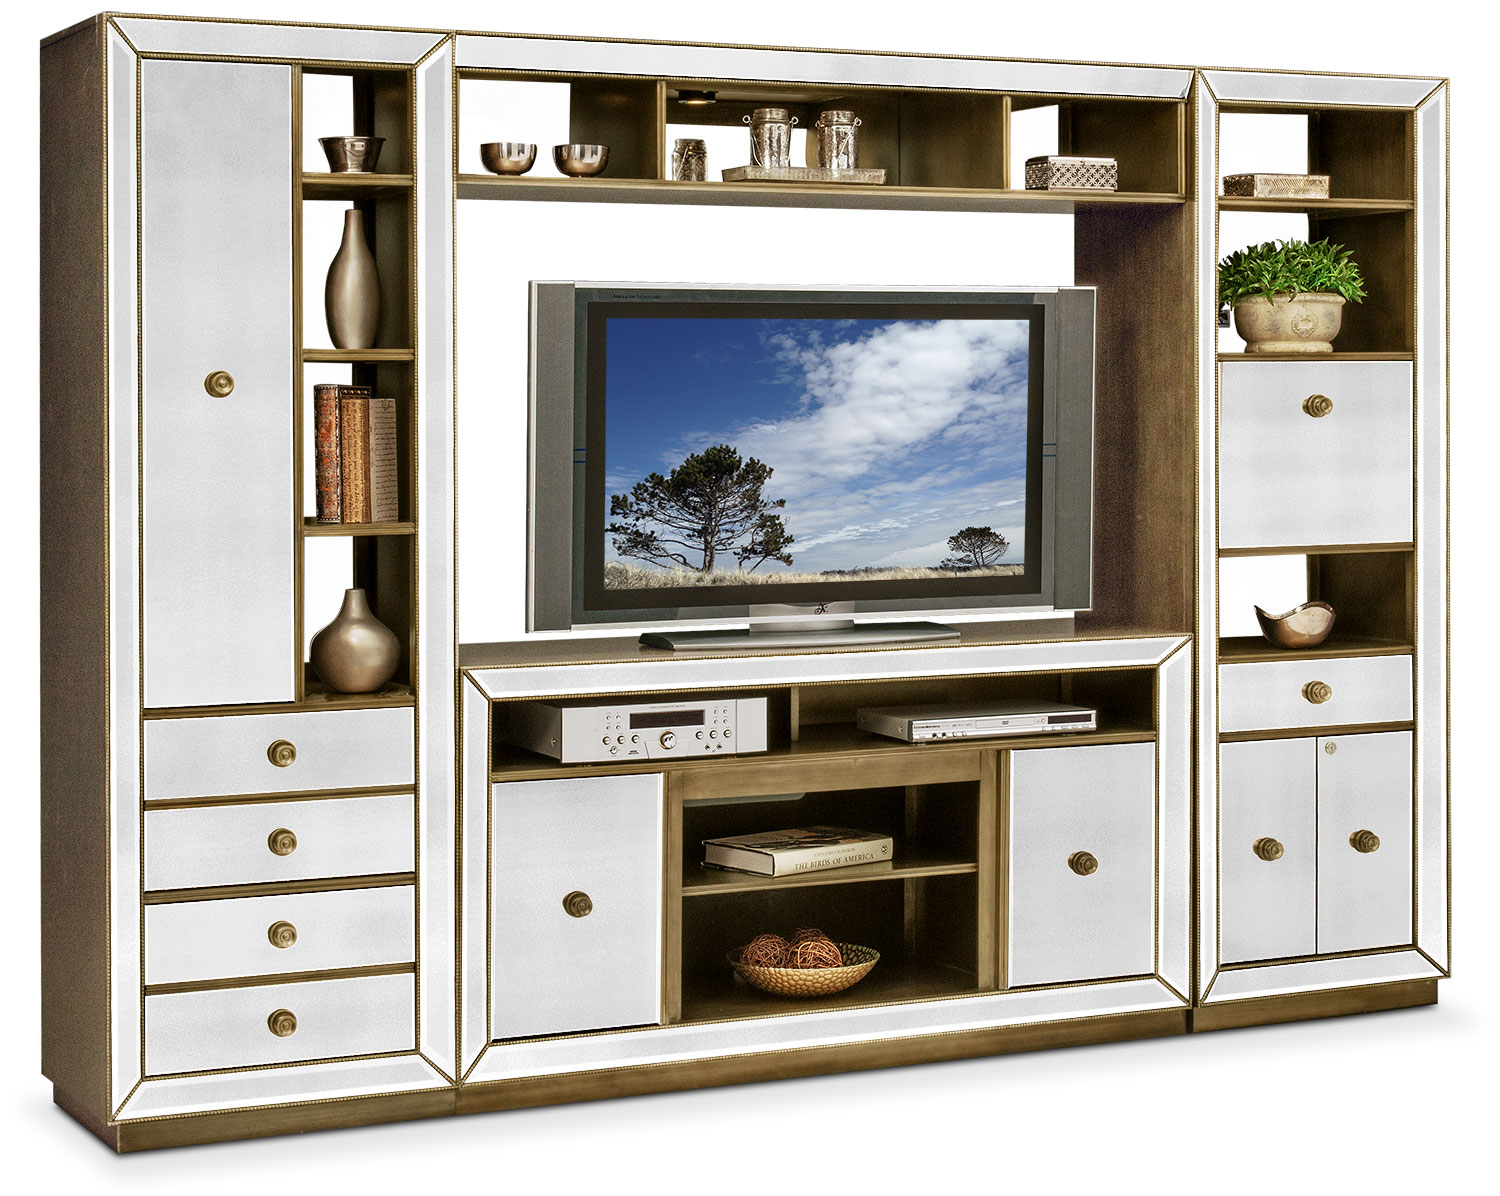 Incroyable Entertainment Furniture   Reflection 4 Piece Entertainment Wall Unit    Mirror